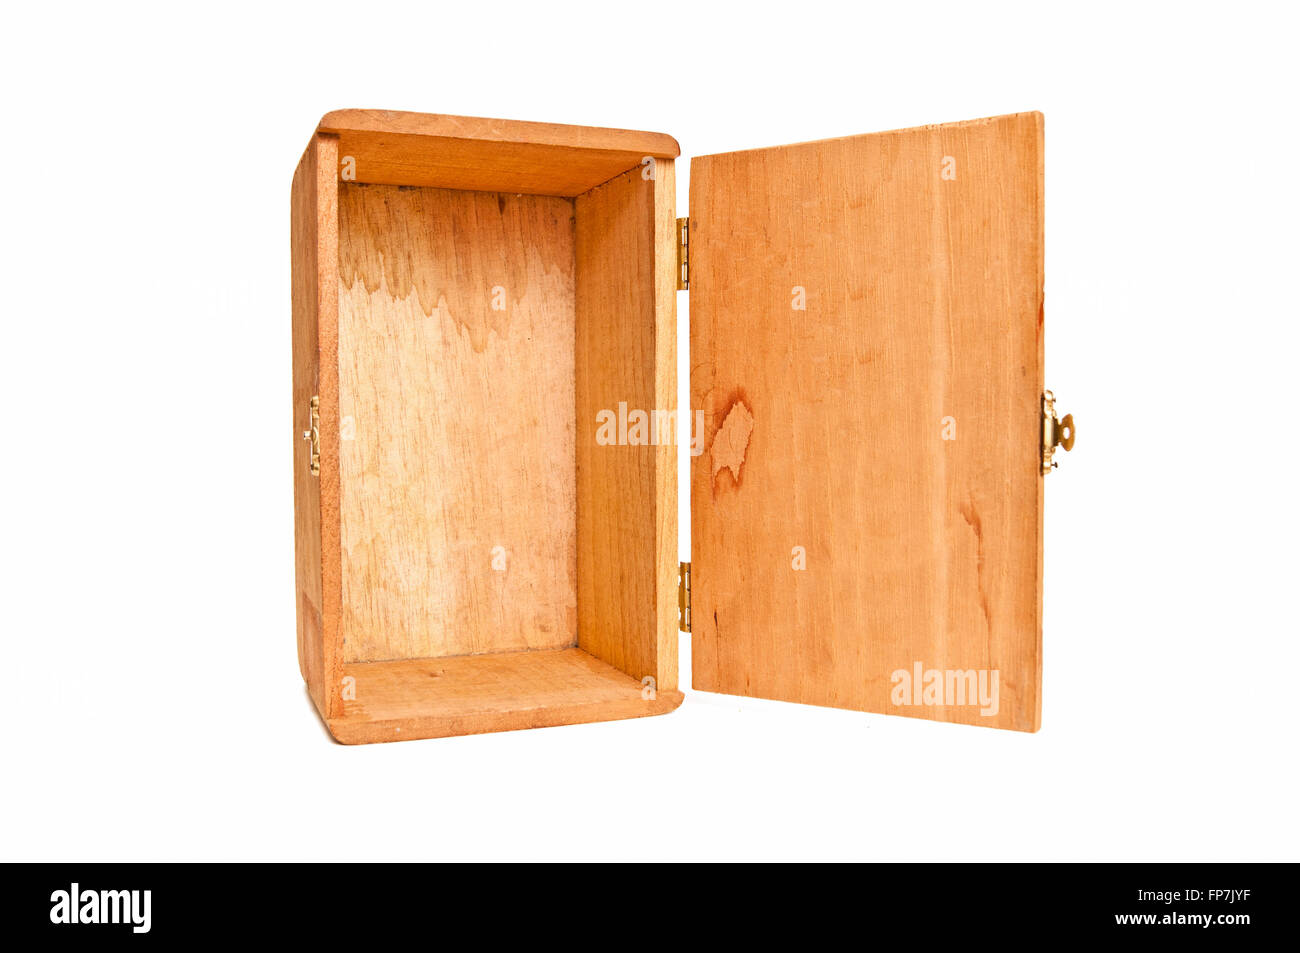 Empty Wooden Box On End With Hinged Door Open Stock Photo